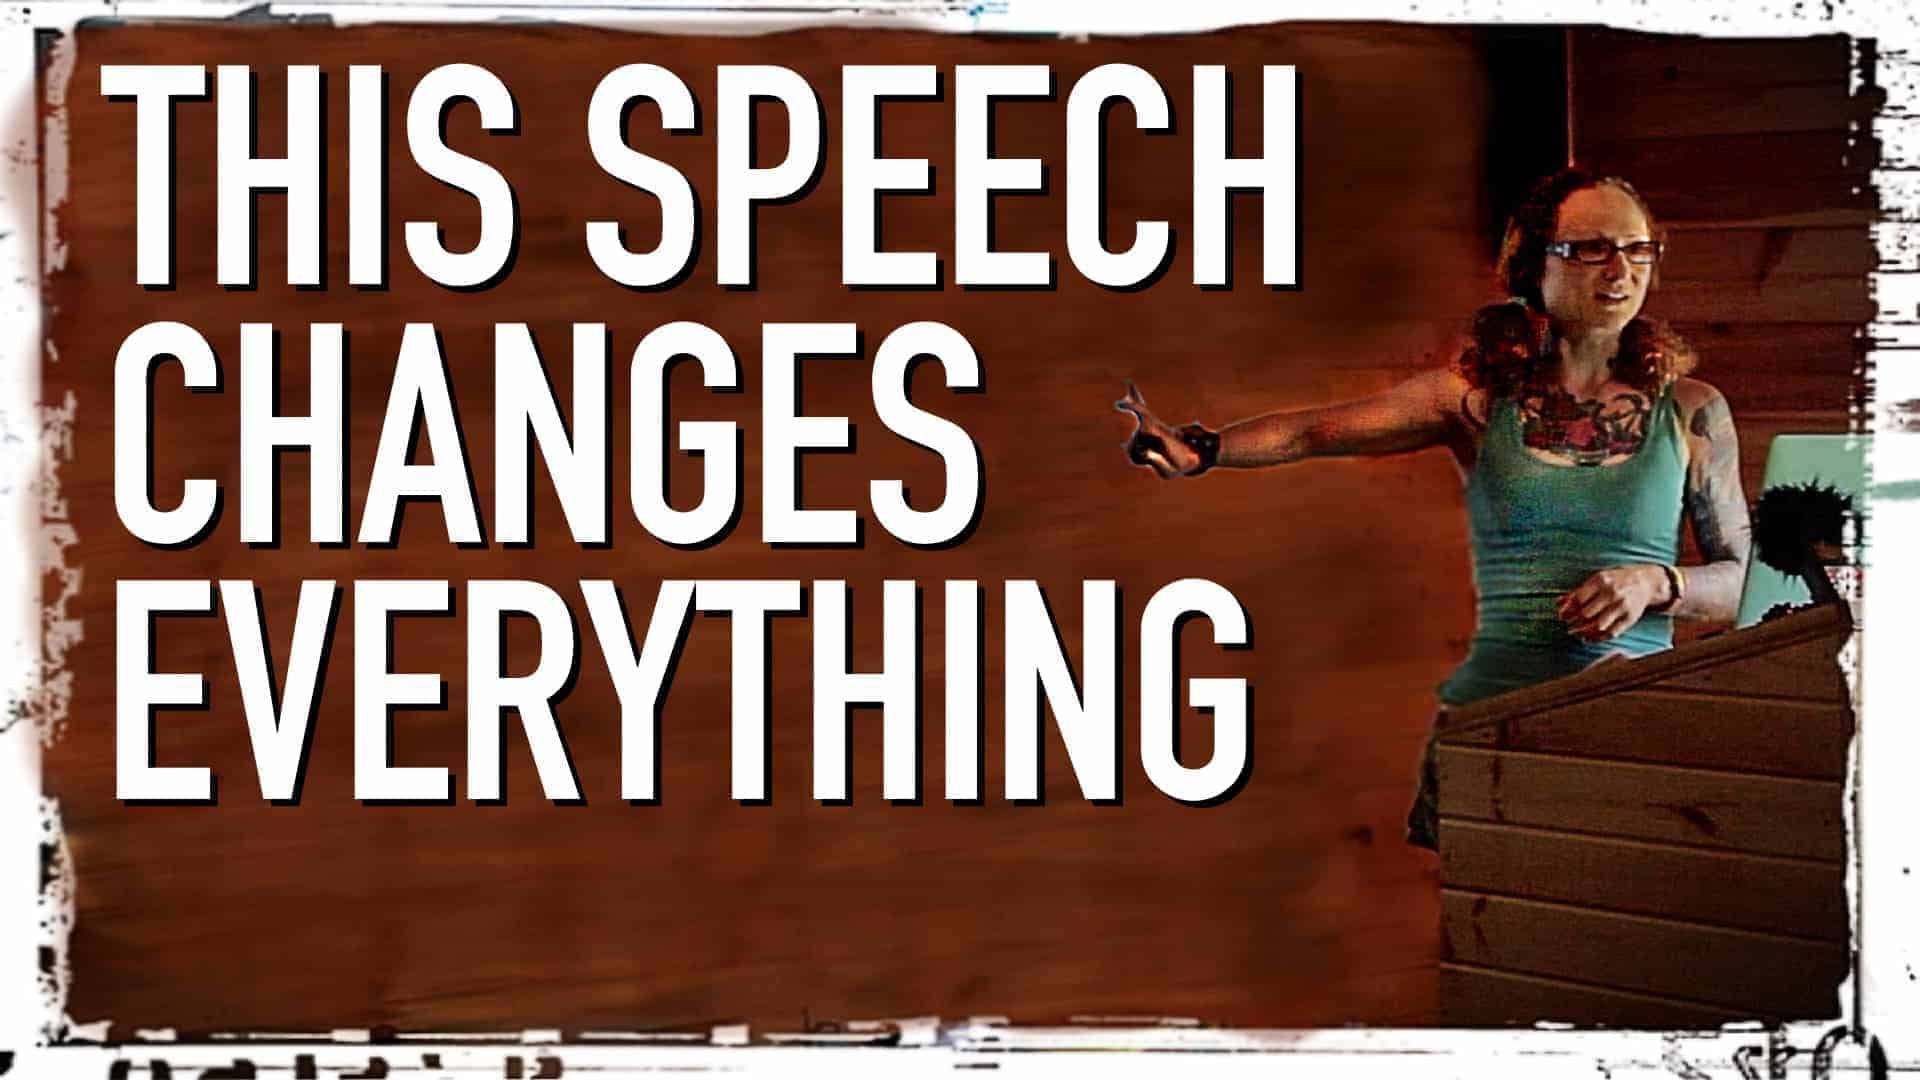 """Emily Moran Barwick of Bite Size Vegan is shown on stage behind a lectern. She is gesticulating with her arms. To the left of this image in large white letters are the words: """"This speech changes everything"""""""